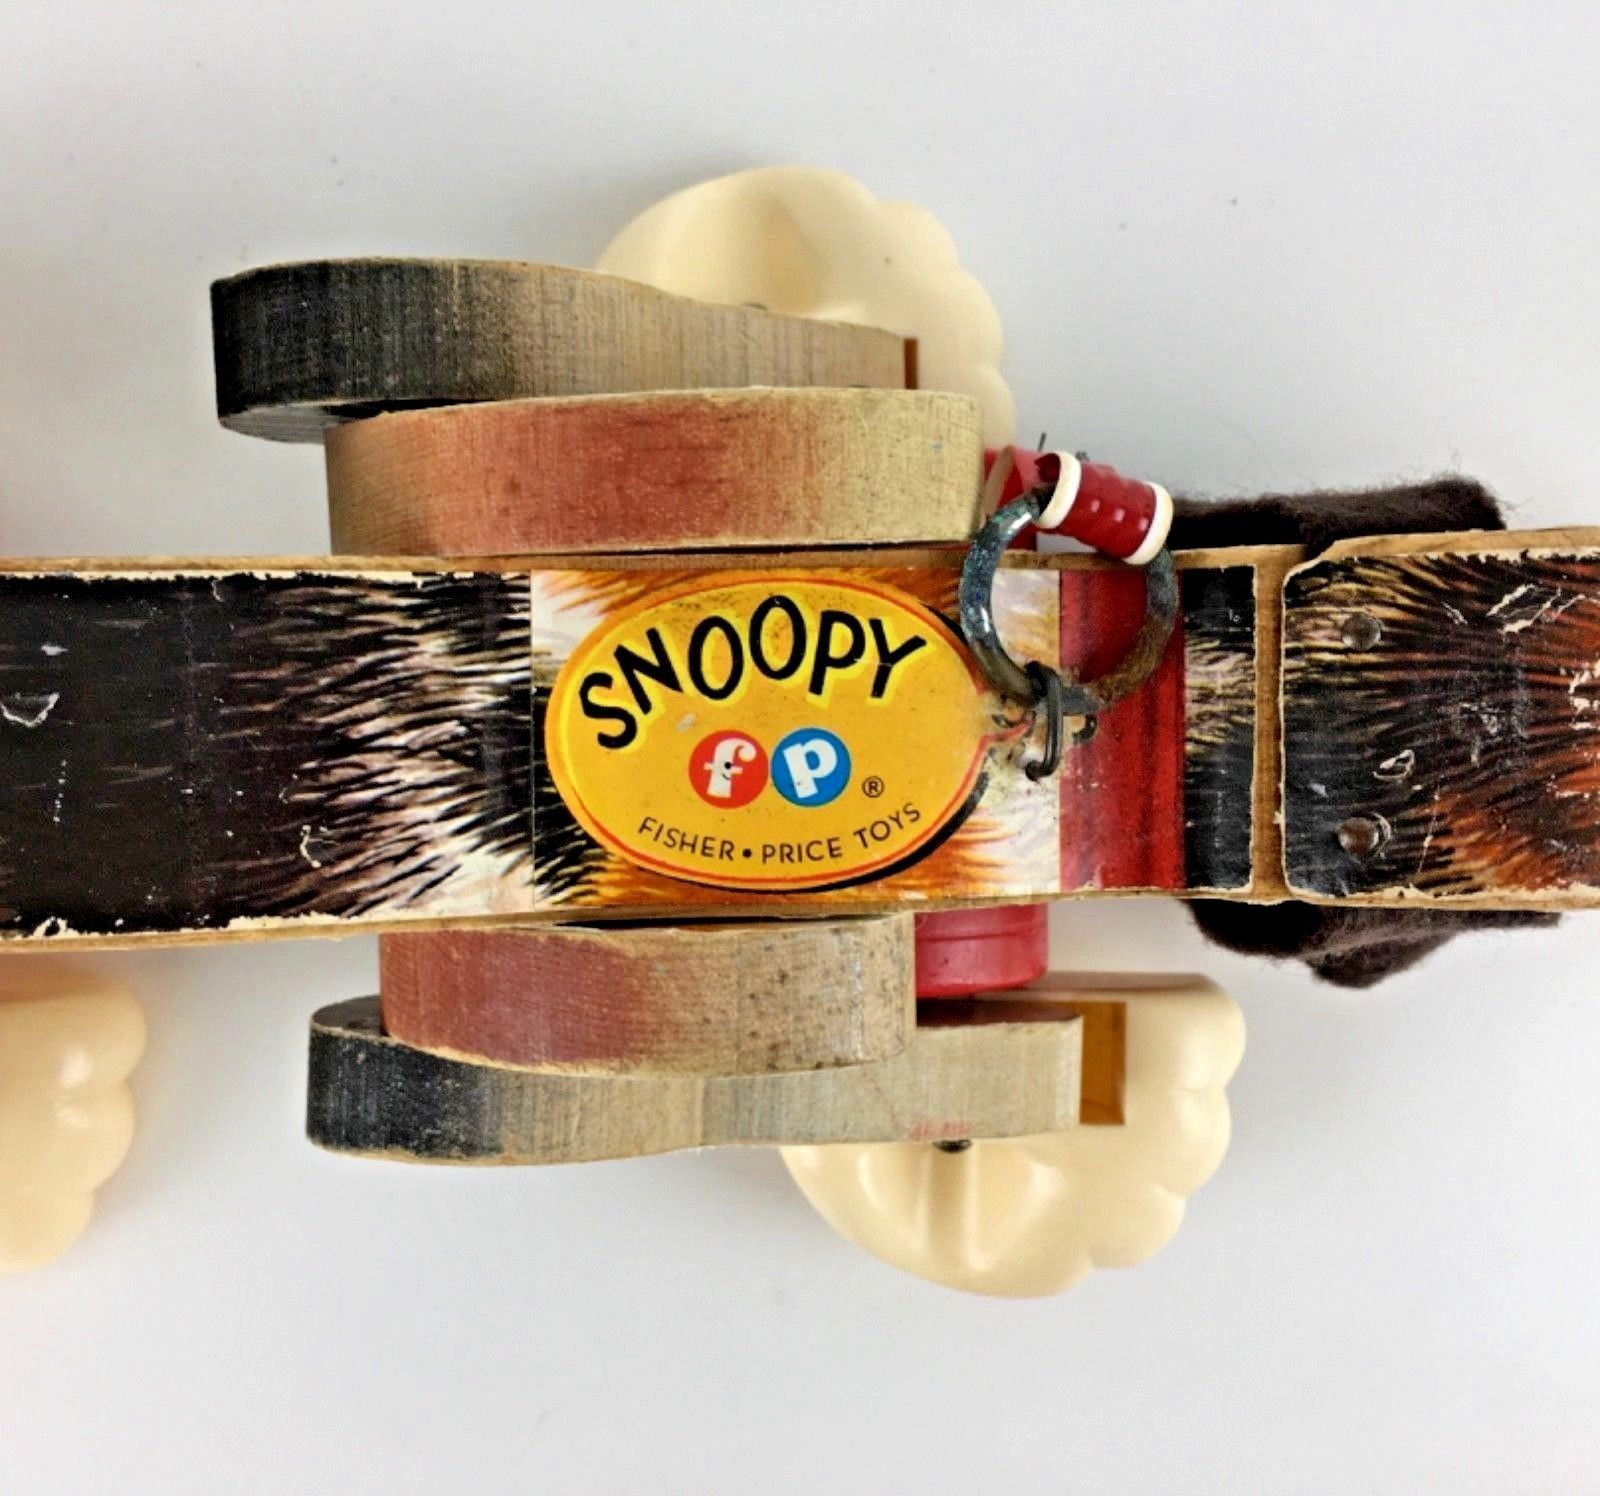 Fisher Price Snoopy Dog Vintage Wooden Pull Toy 1961 Toy 181 Spots Works Gift